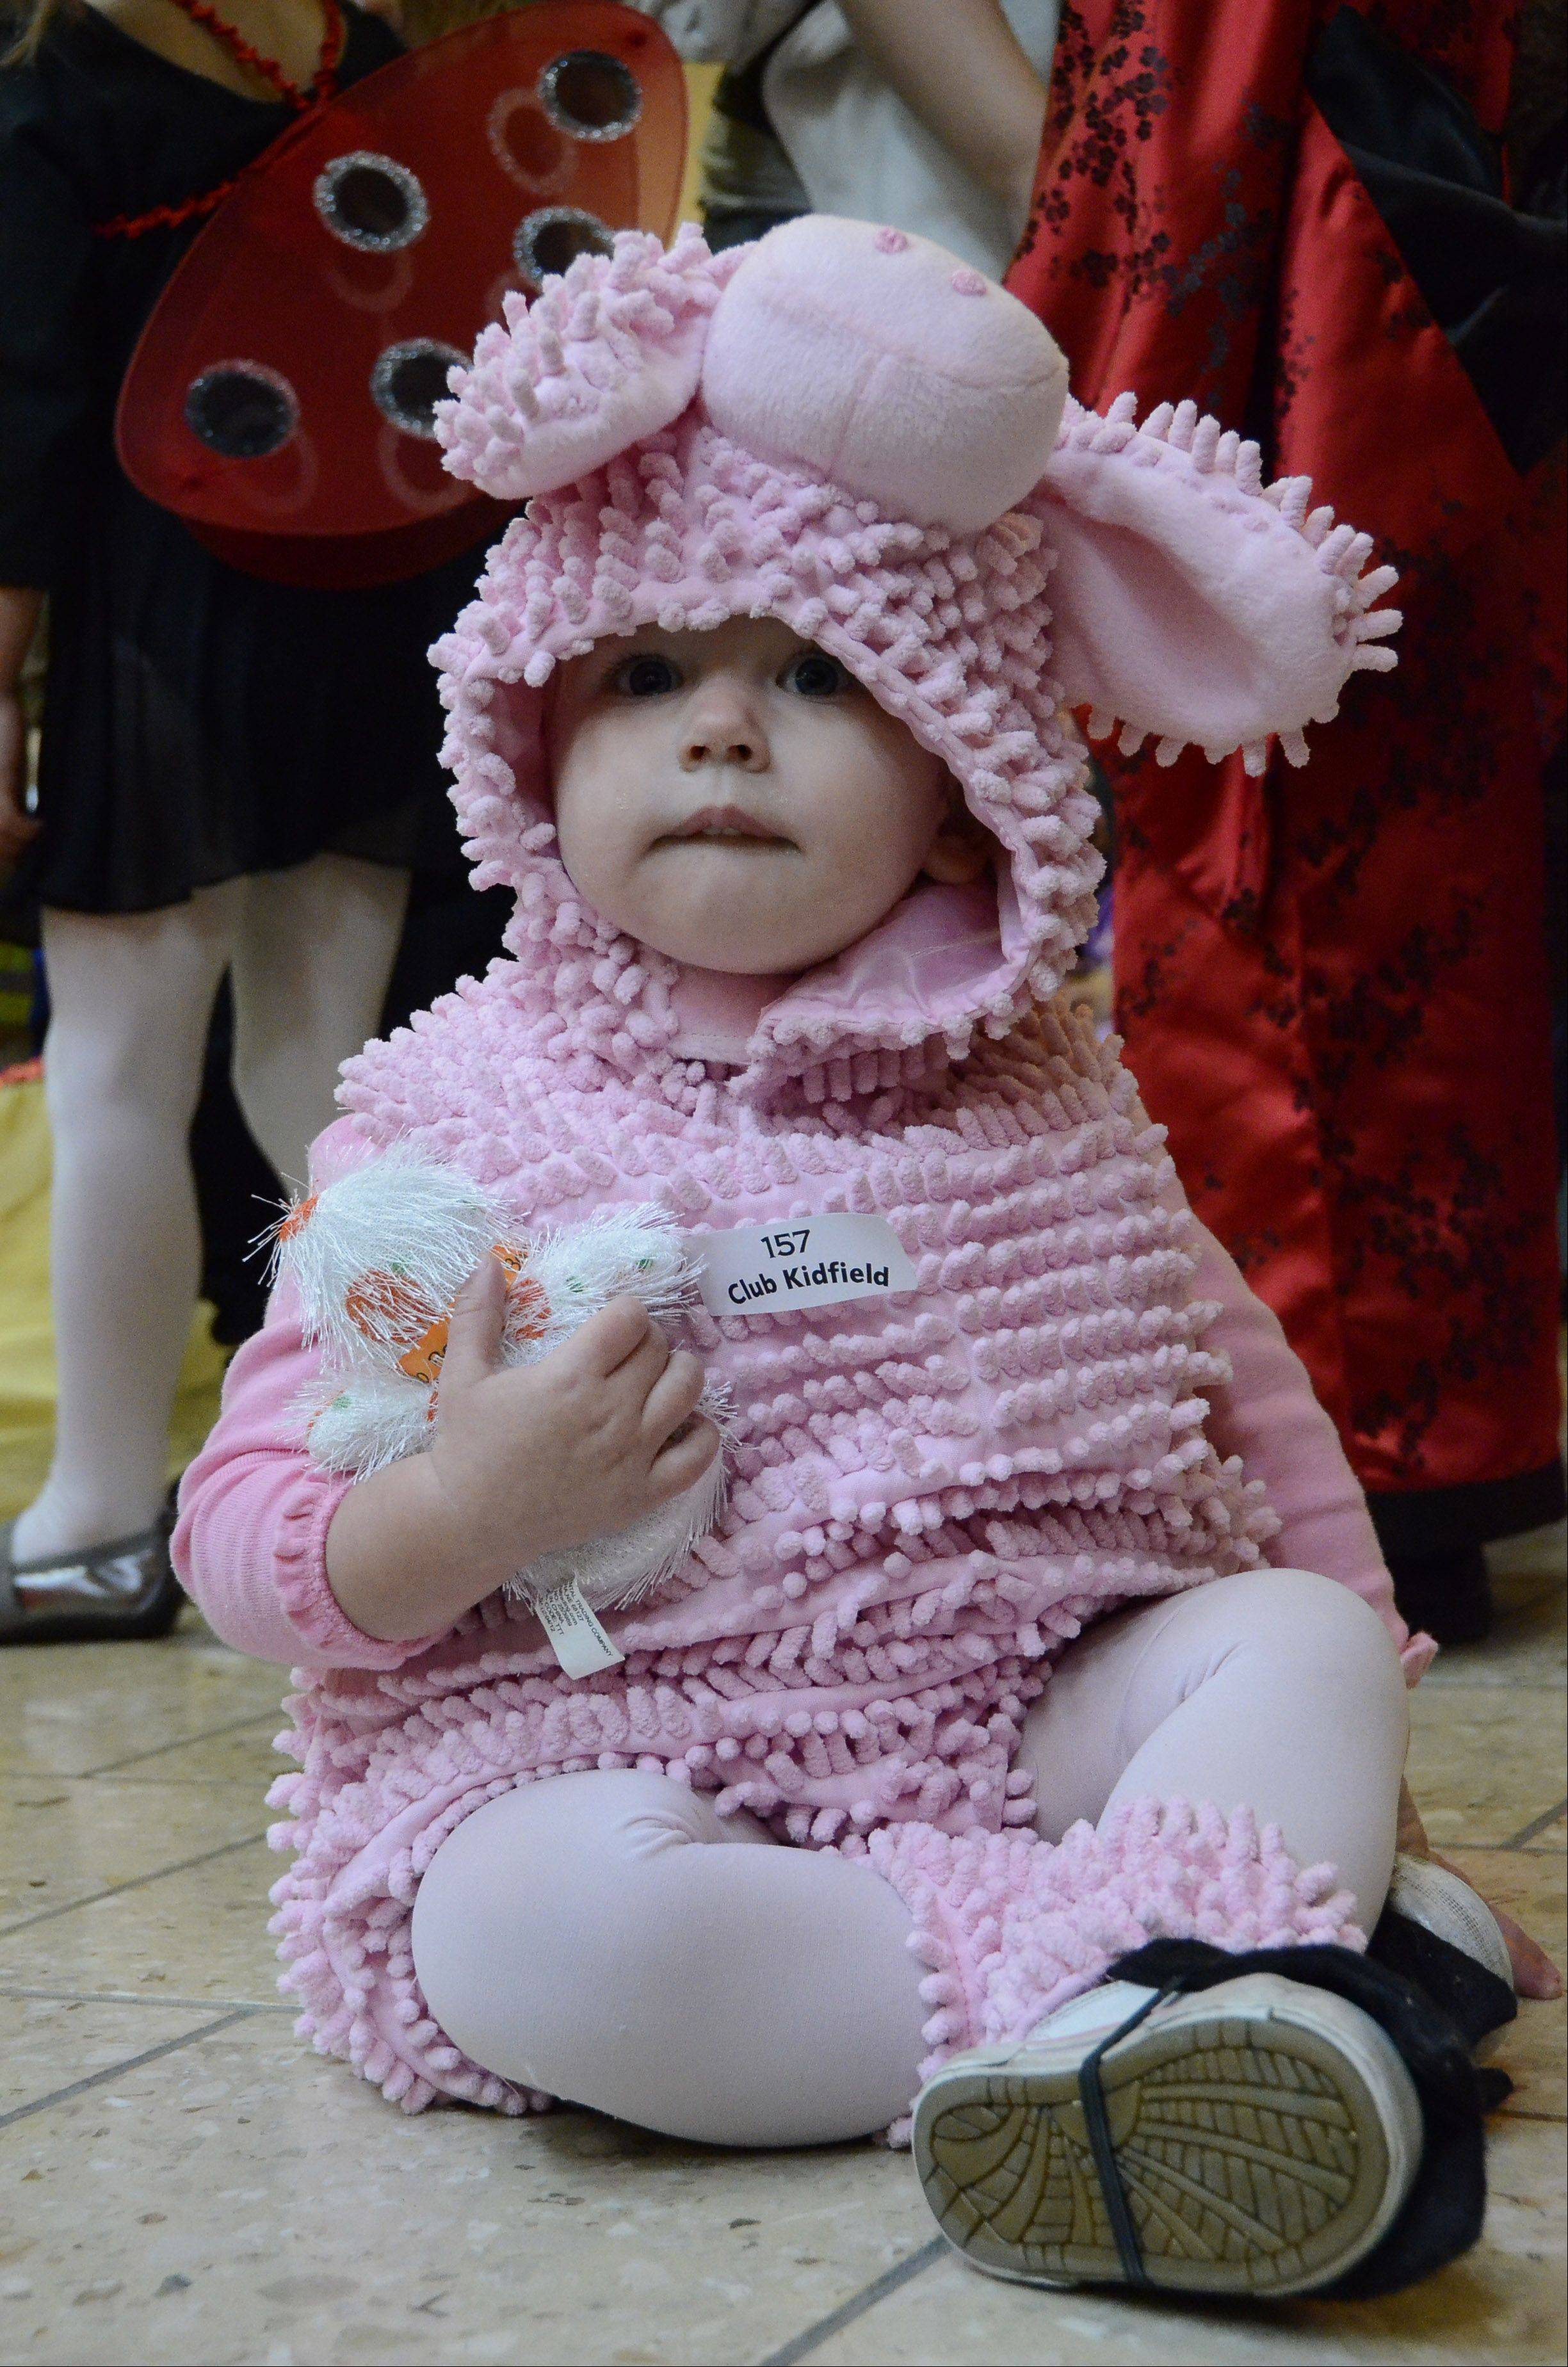 Ashley Jaski, 1, of Chicago is dressed as a pink pig at the Halloween Spooktacular Wednesday morning at Woodfield Mall in Schaumburg.